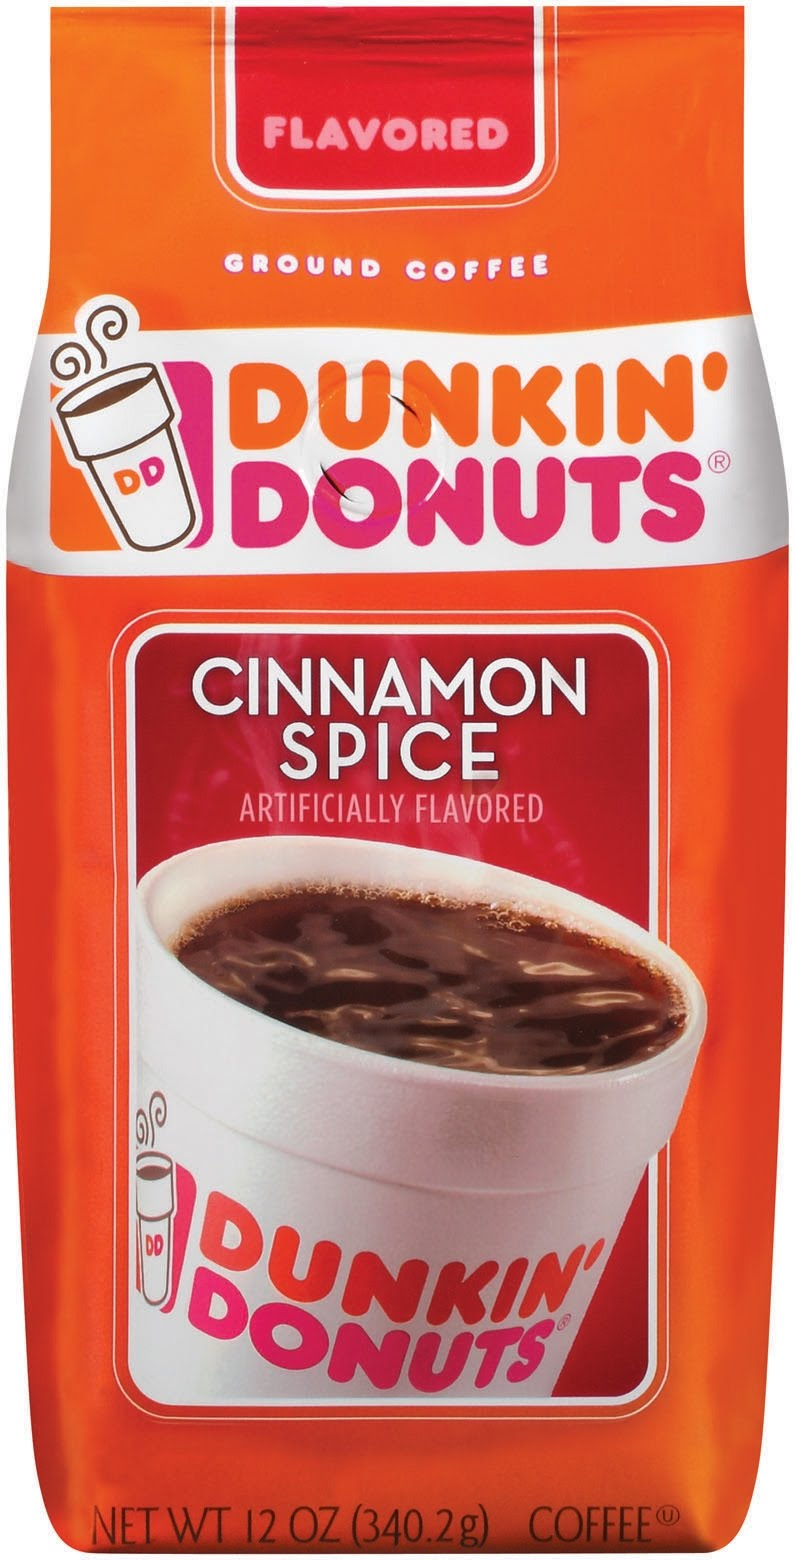 Dunkin' Donuts Coffee - Review and Giveaway